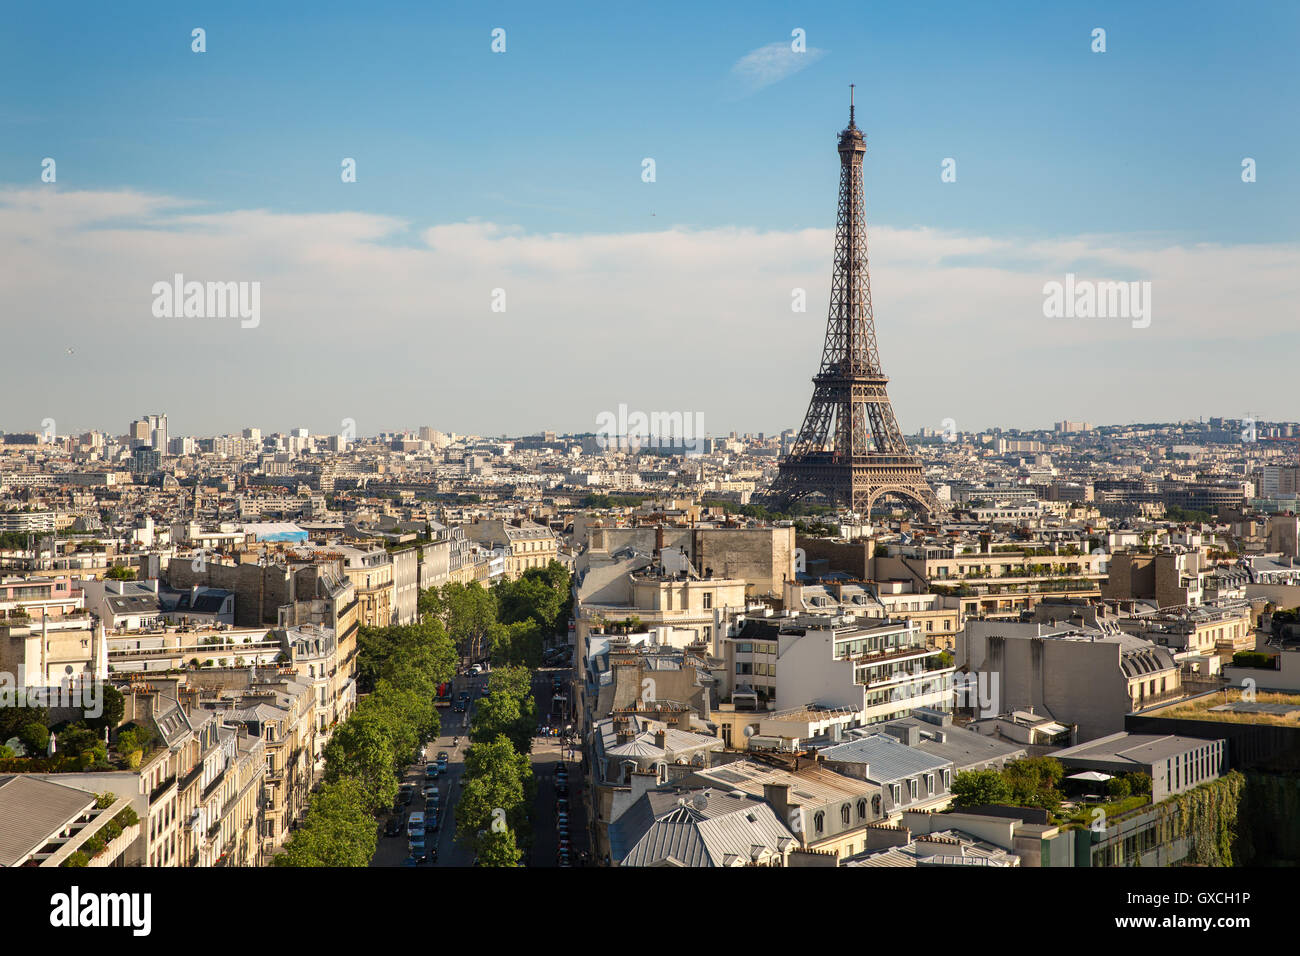 The Paris skyline and Eiffel Tower, France - Stock Image